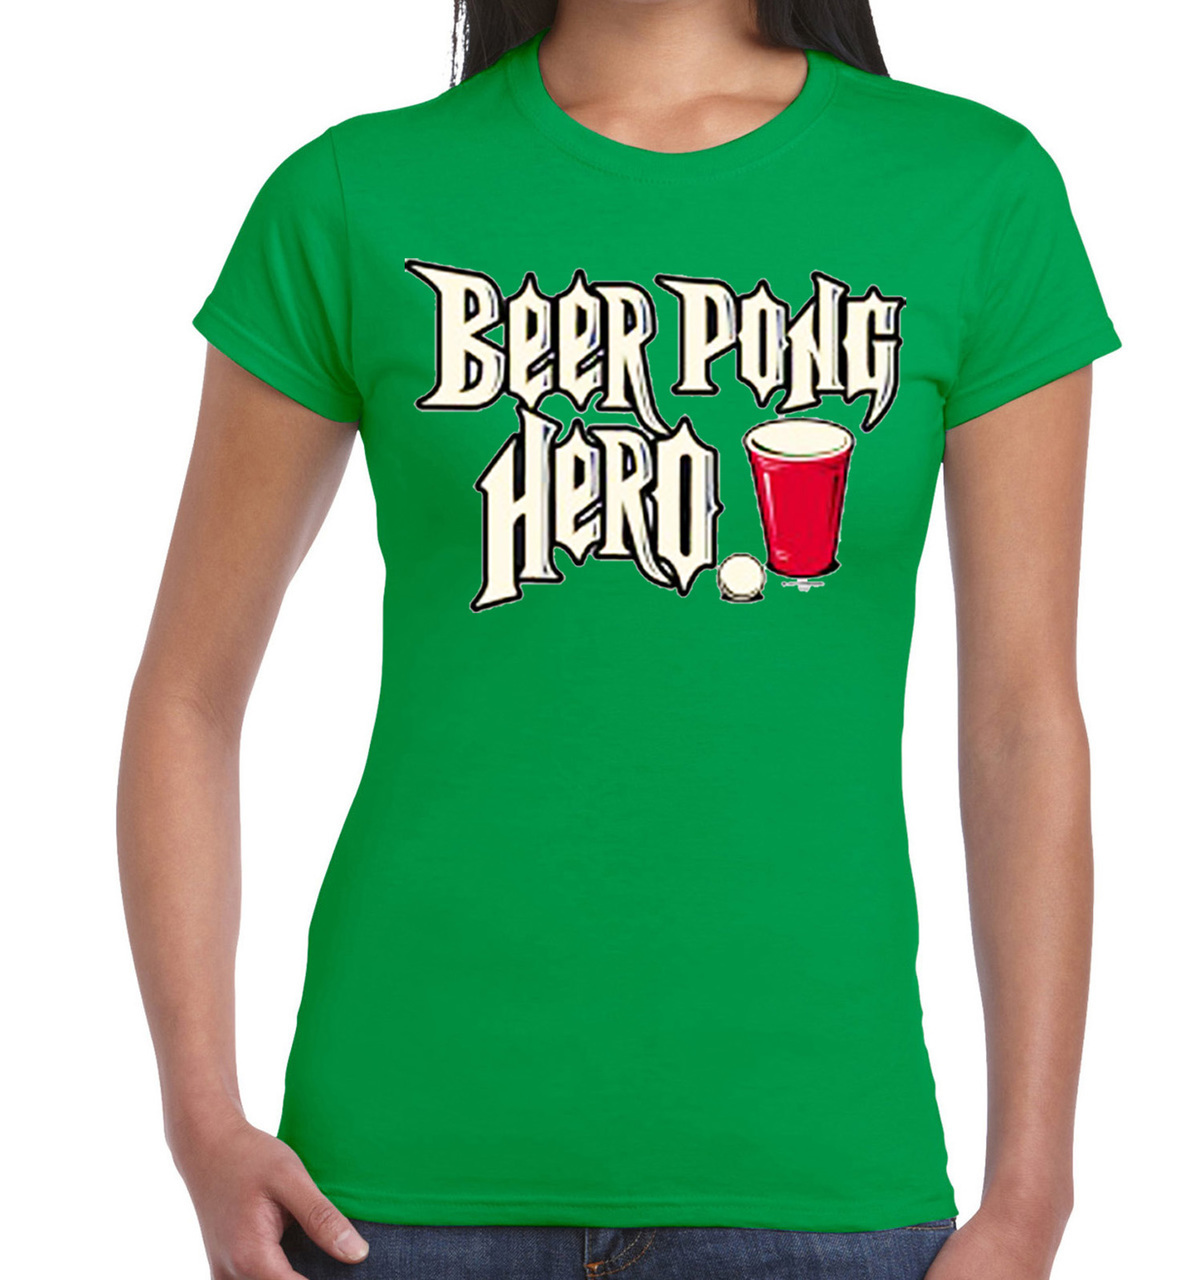 Beer Pong Hero T-Shirt